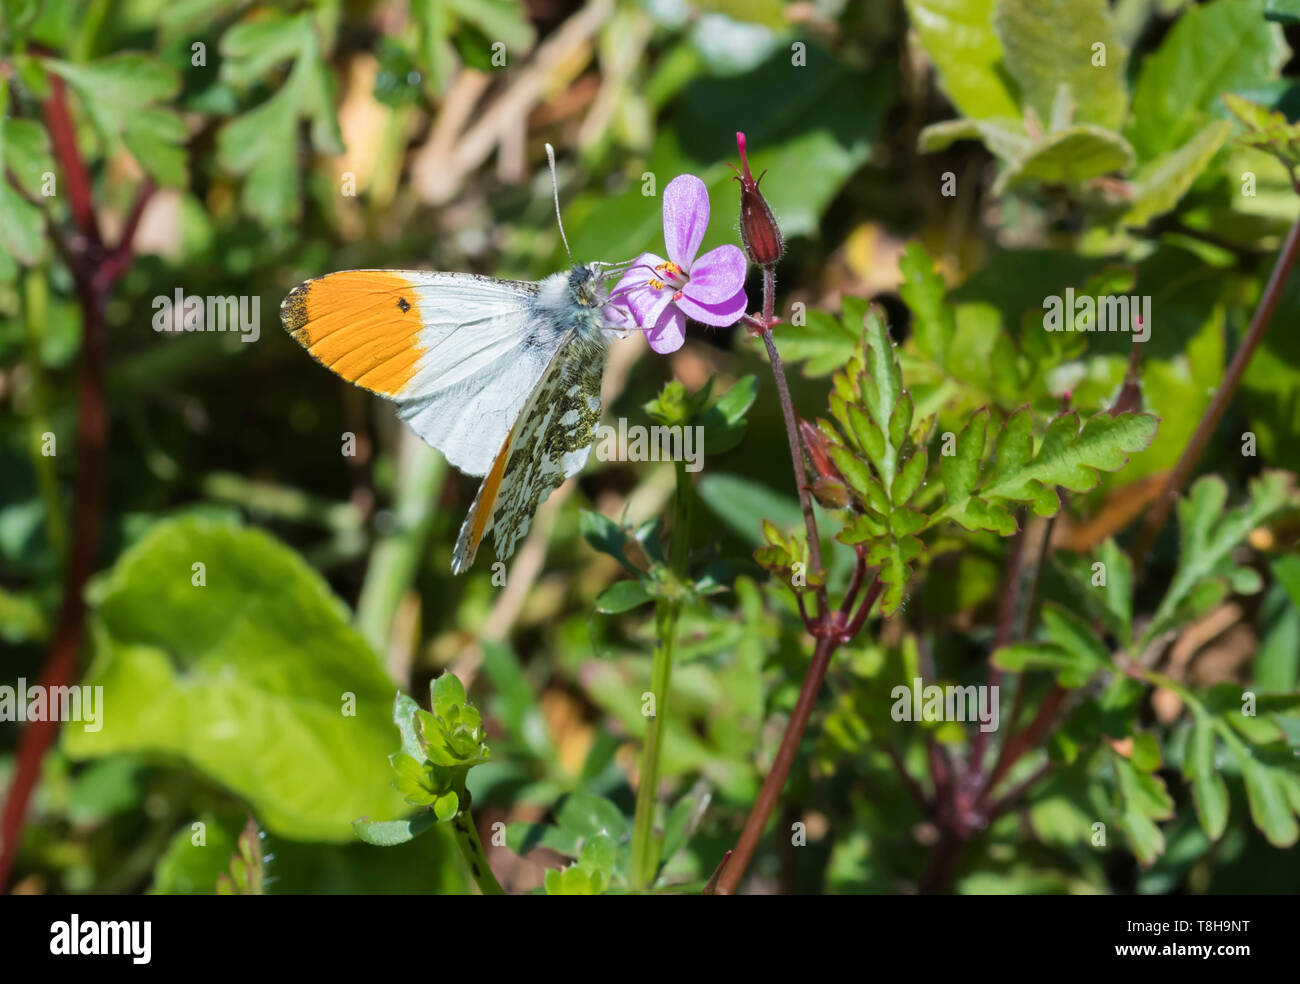 Male Orange tip butterfly (Orange tipped butterfly, Anthocharis cardamines) sitting on a pink flower in a garden in Spring (May) in West Sussex, UK. Stock Photo